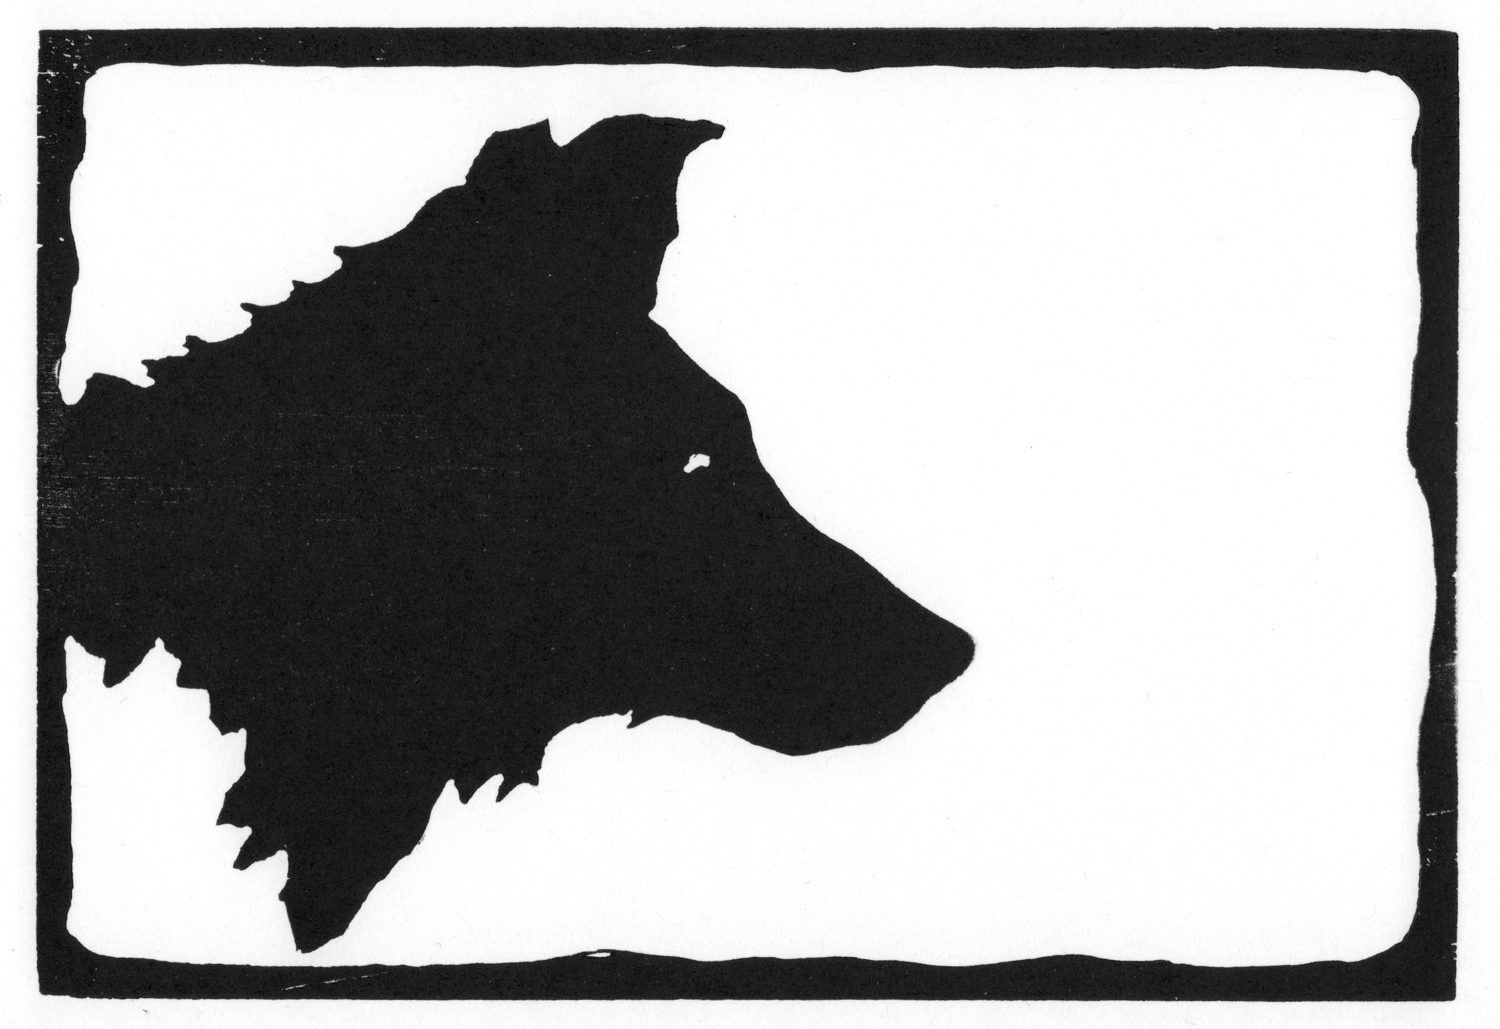 Young Wolf II • © Fred Montague  $48 • image 8 x 5.5 • mat 14 x 11  Edition size: 88 • status: low quantity